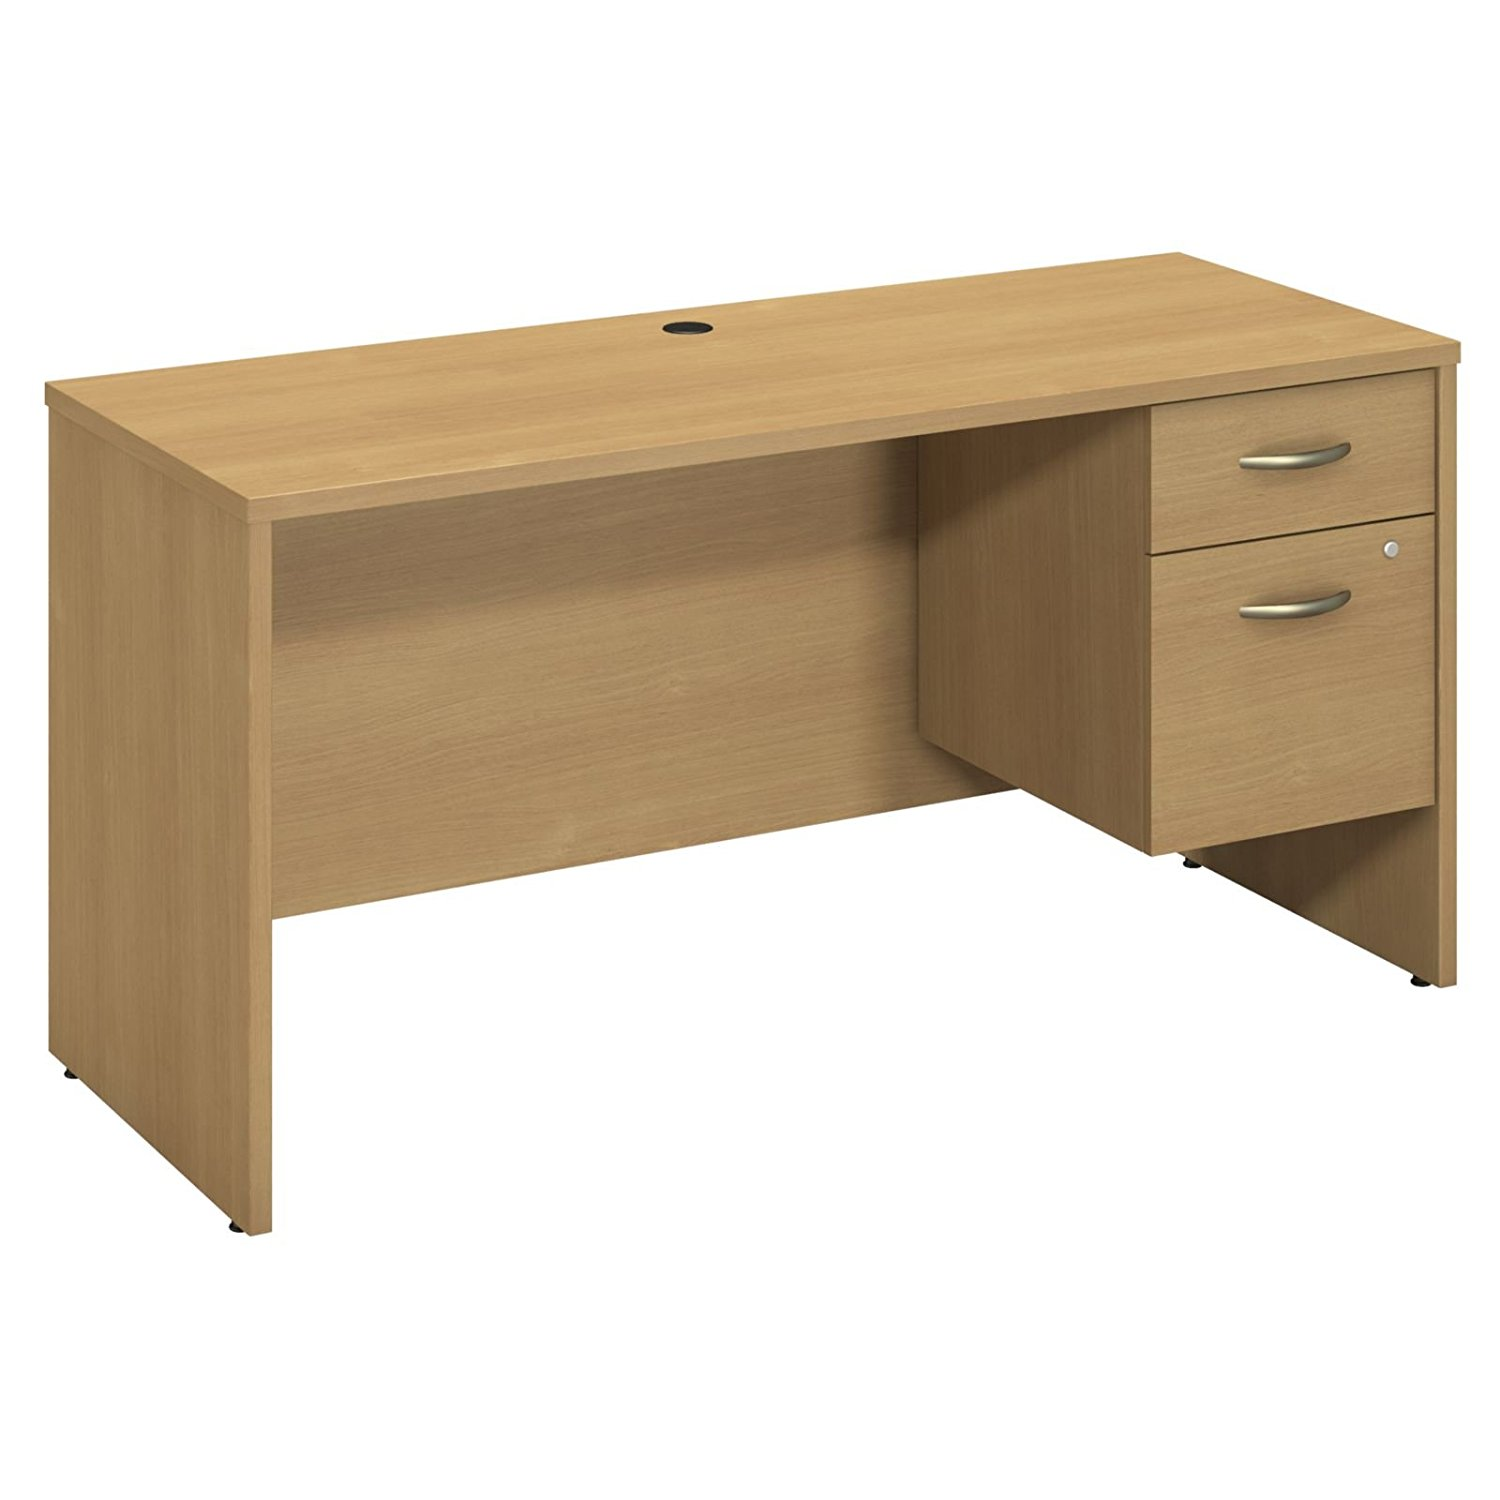 Attirant Get Quotations · Bush Business Furniture Series C 60W X 24D Credenza Shell  With 3/4 Pedestal In